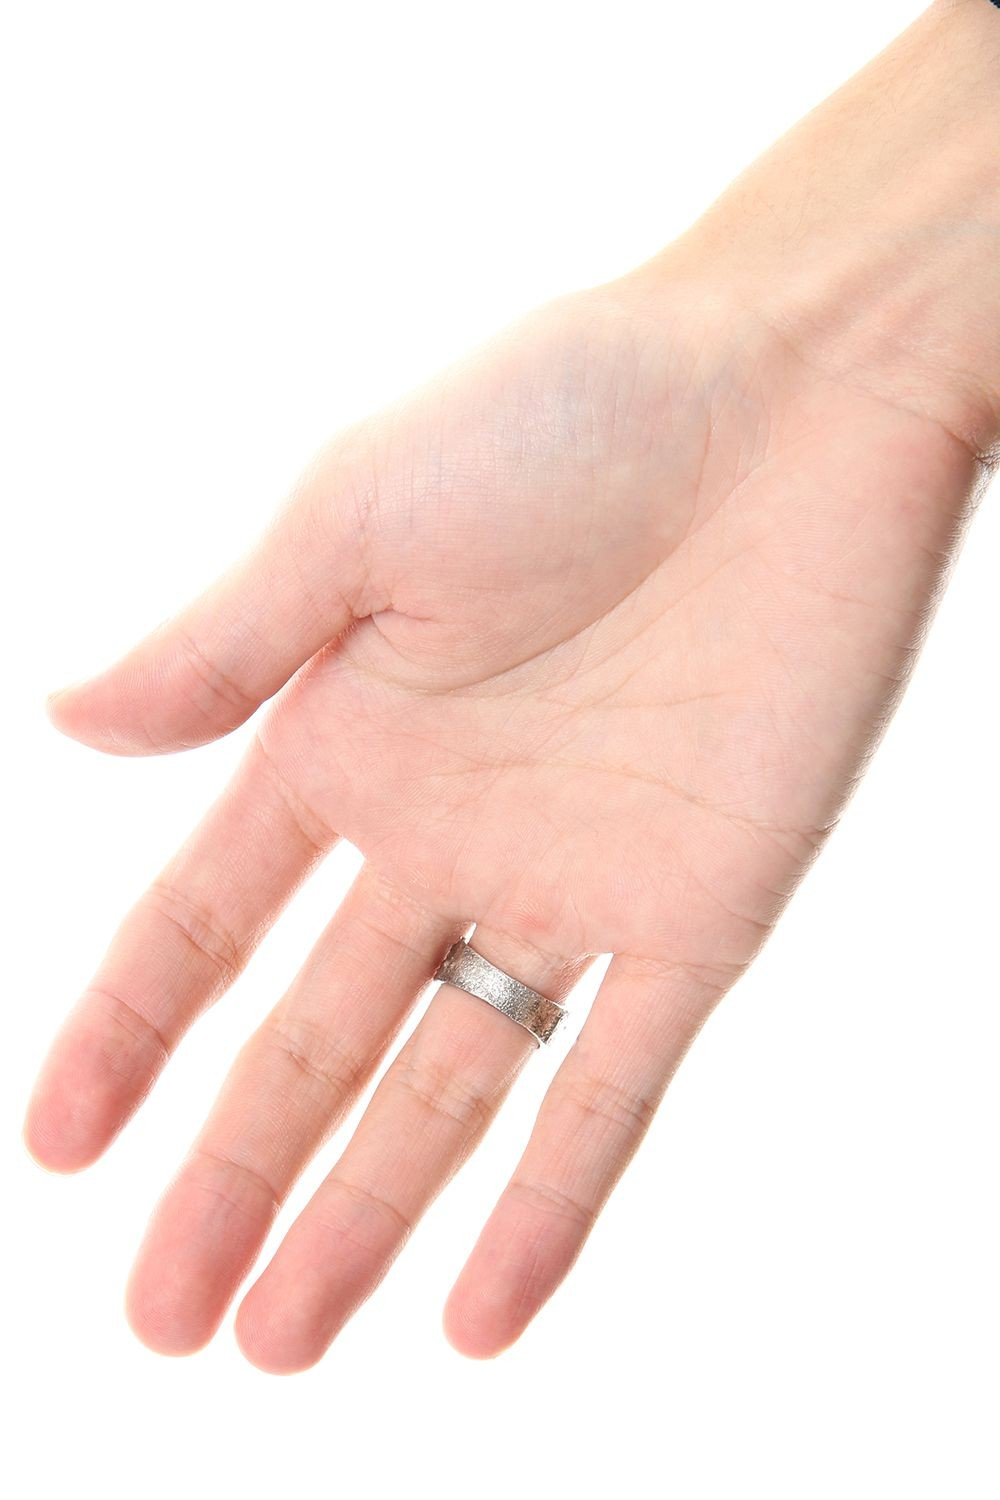 FASCINATE Limited Melt Ring - io-01-fal